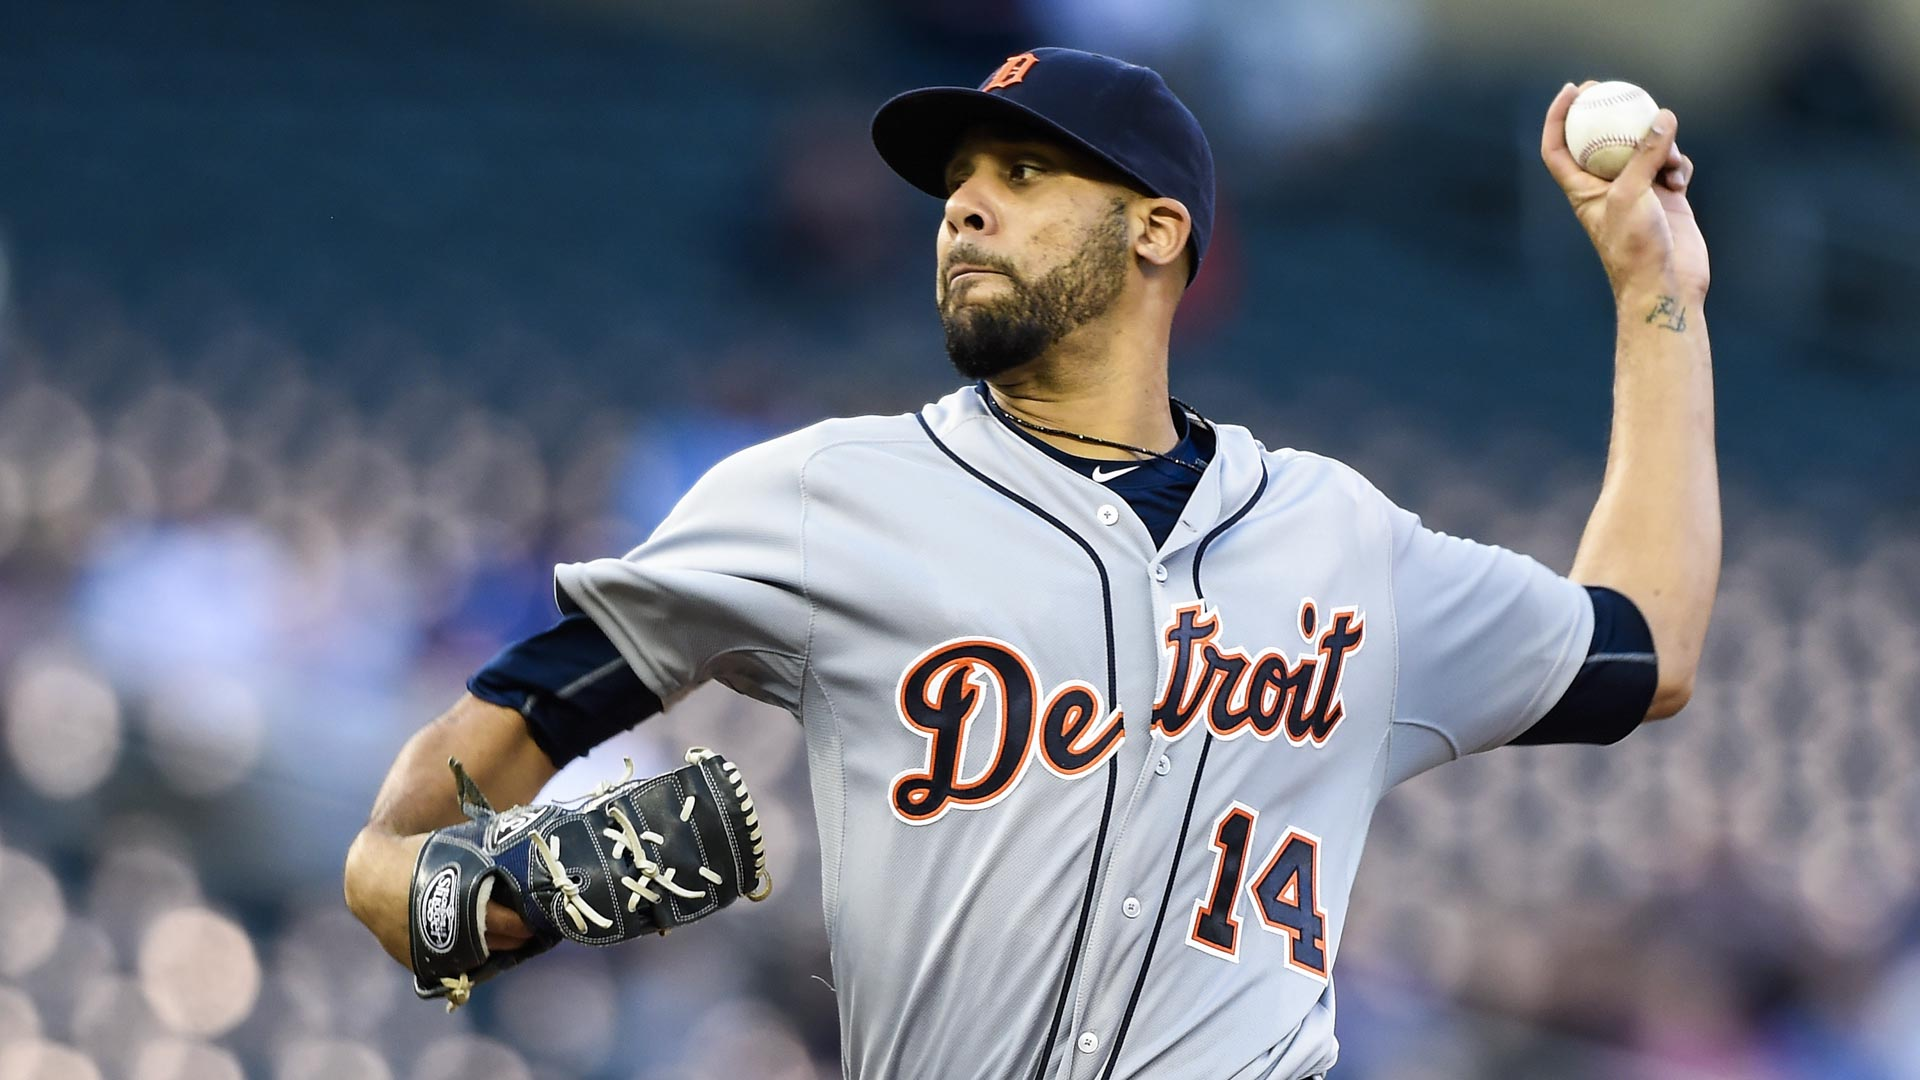 MLB odds and picks – Tigers' Price a bargain at Oakland